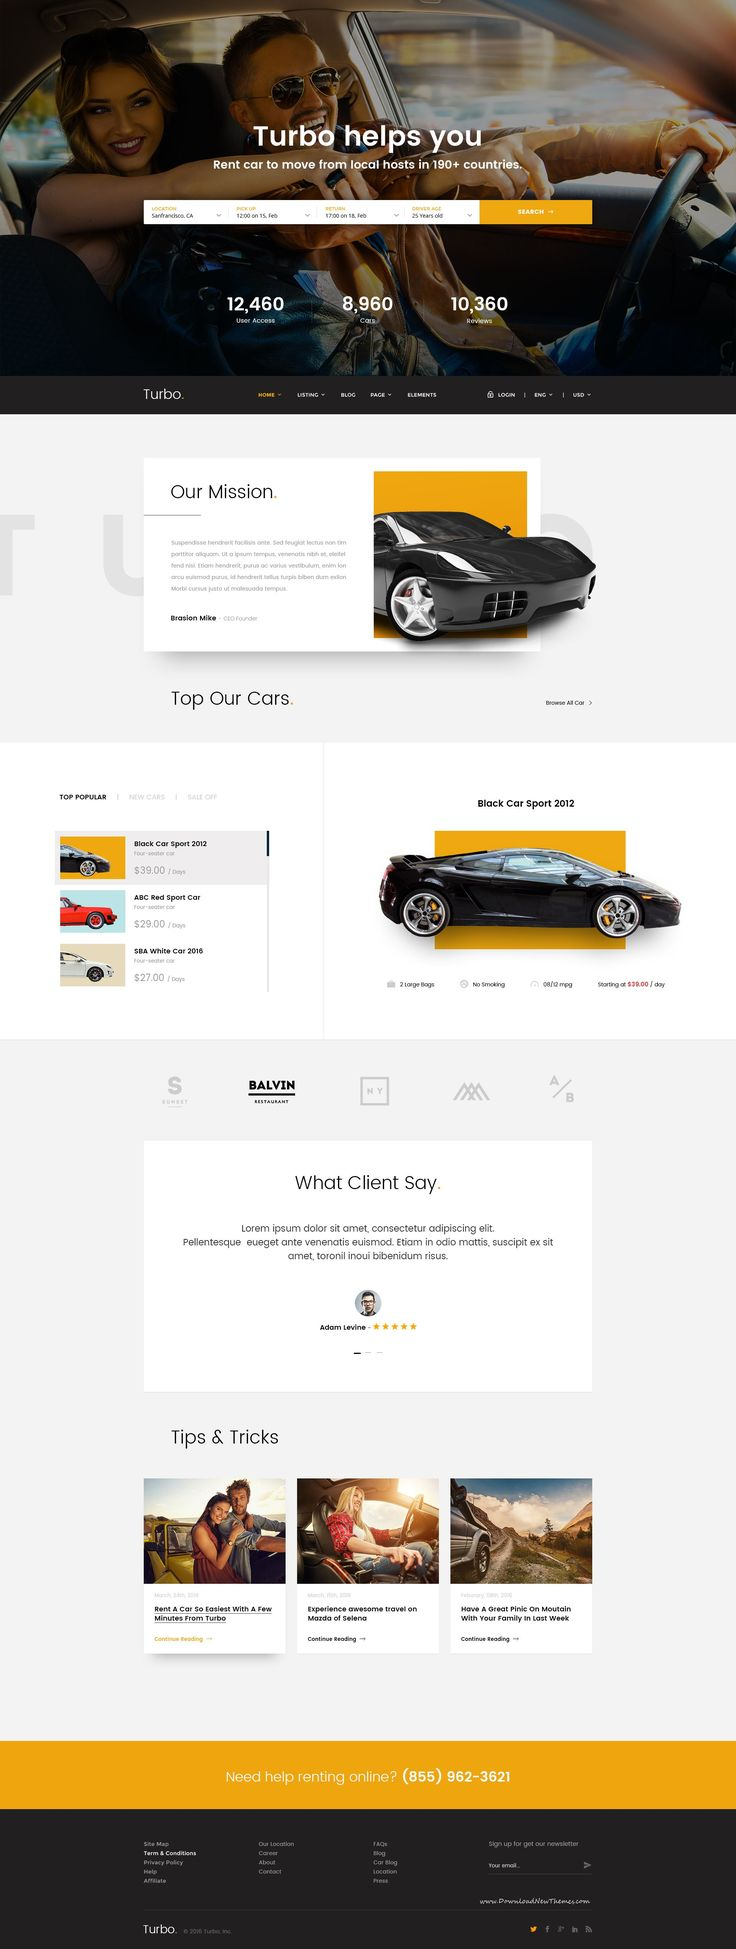 1000 ideas about car rental on pinterest joomla themes print templates and web banners. Black Bedroom Furniture Sets. Home Design Ideas